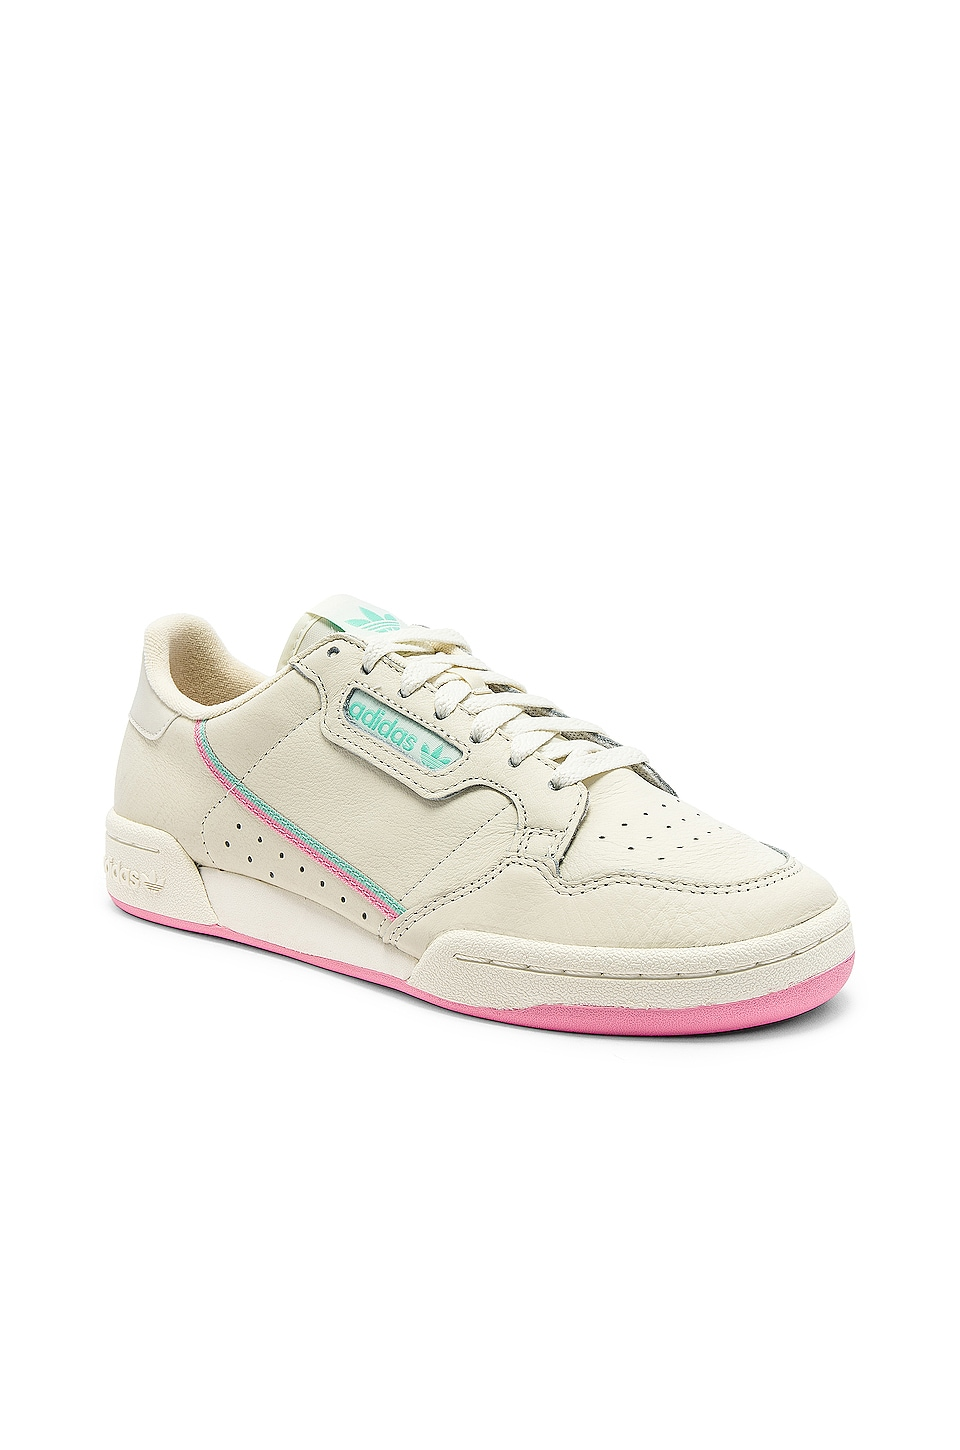 adidas Originals Continental 80 in Off White & Pink